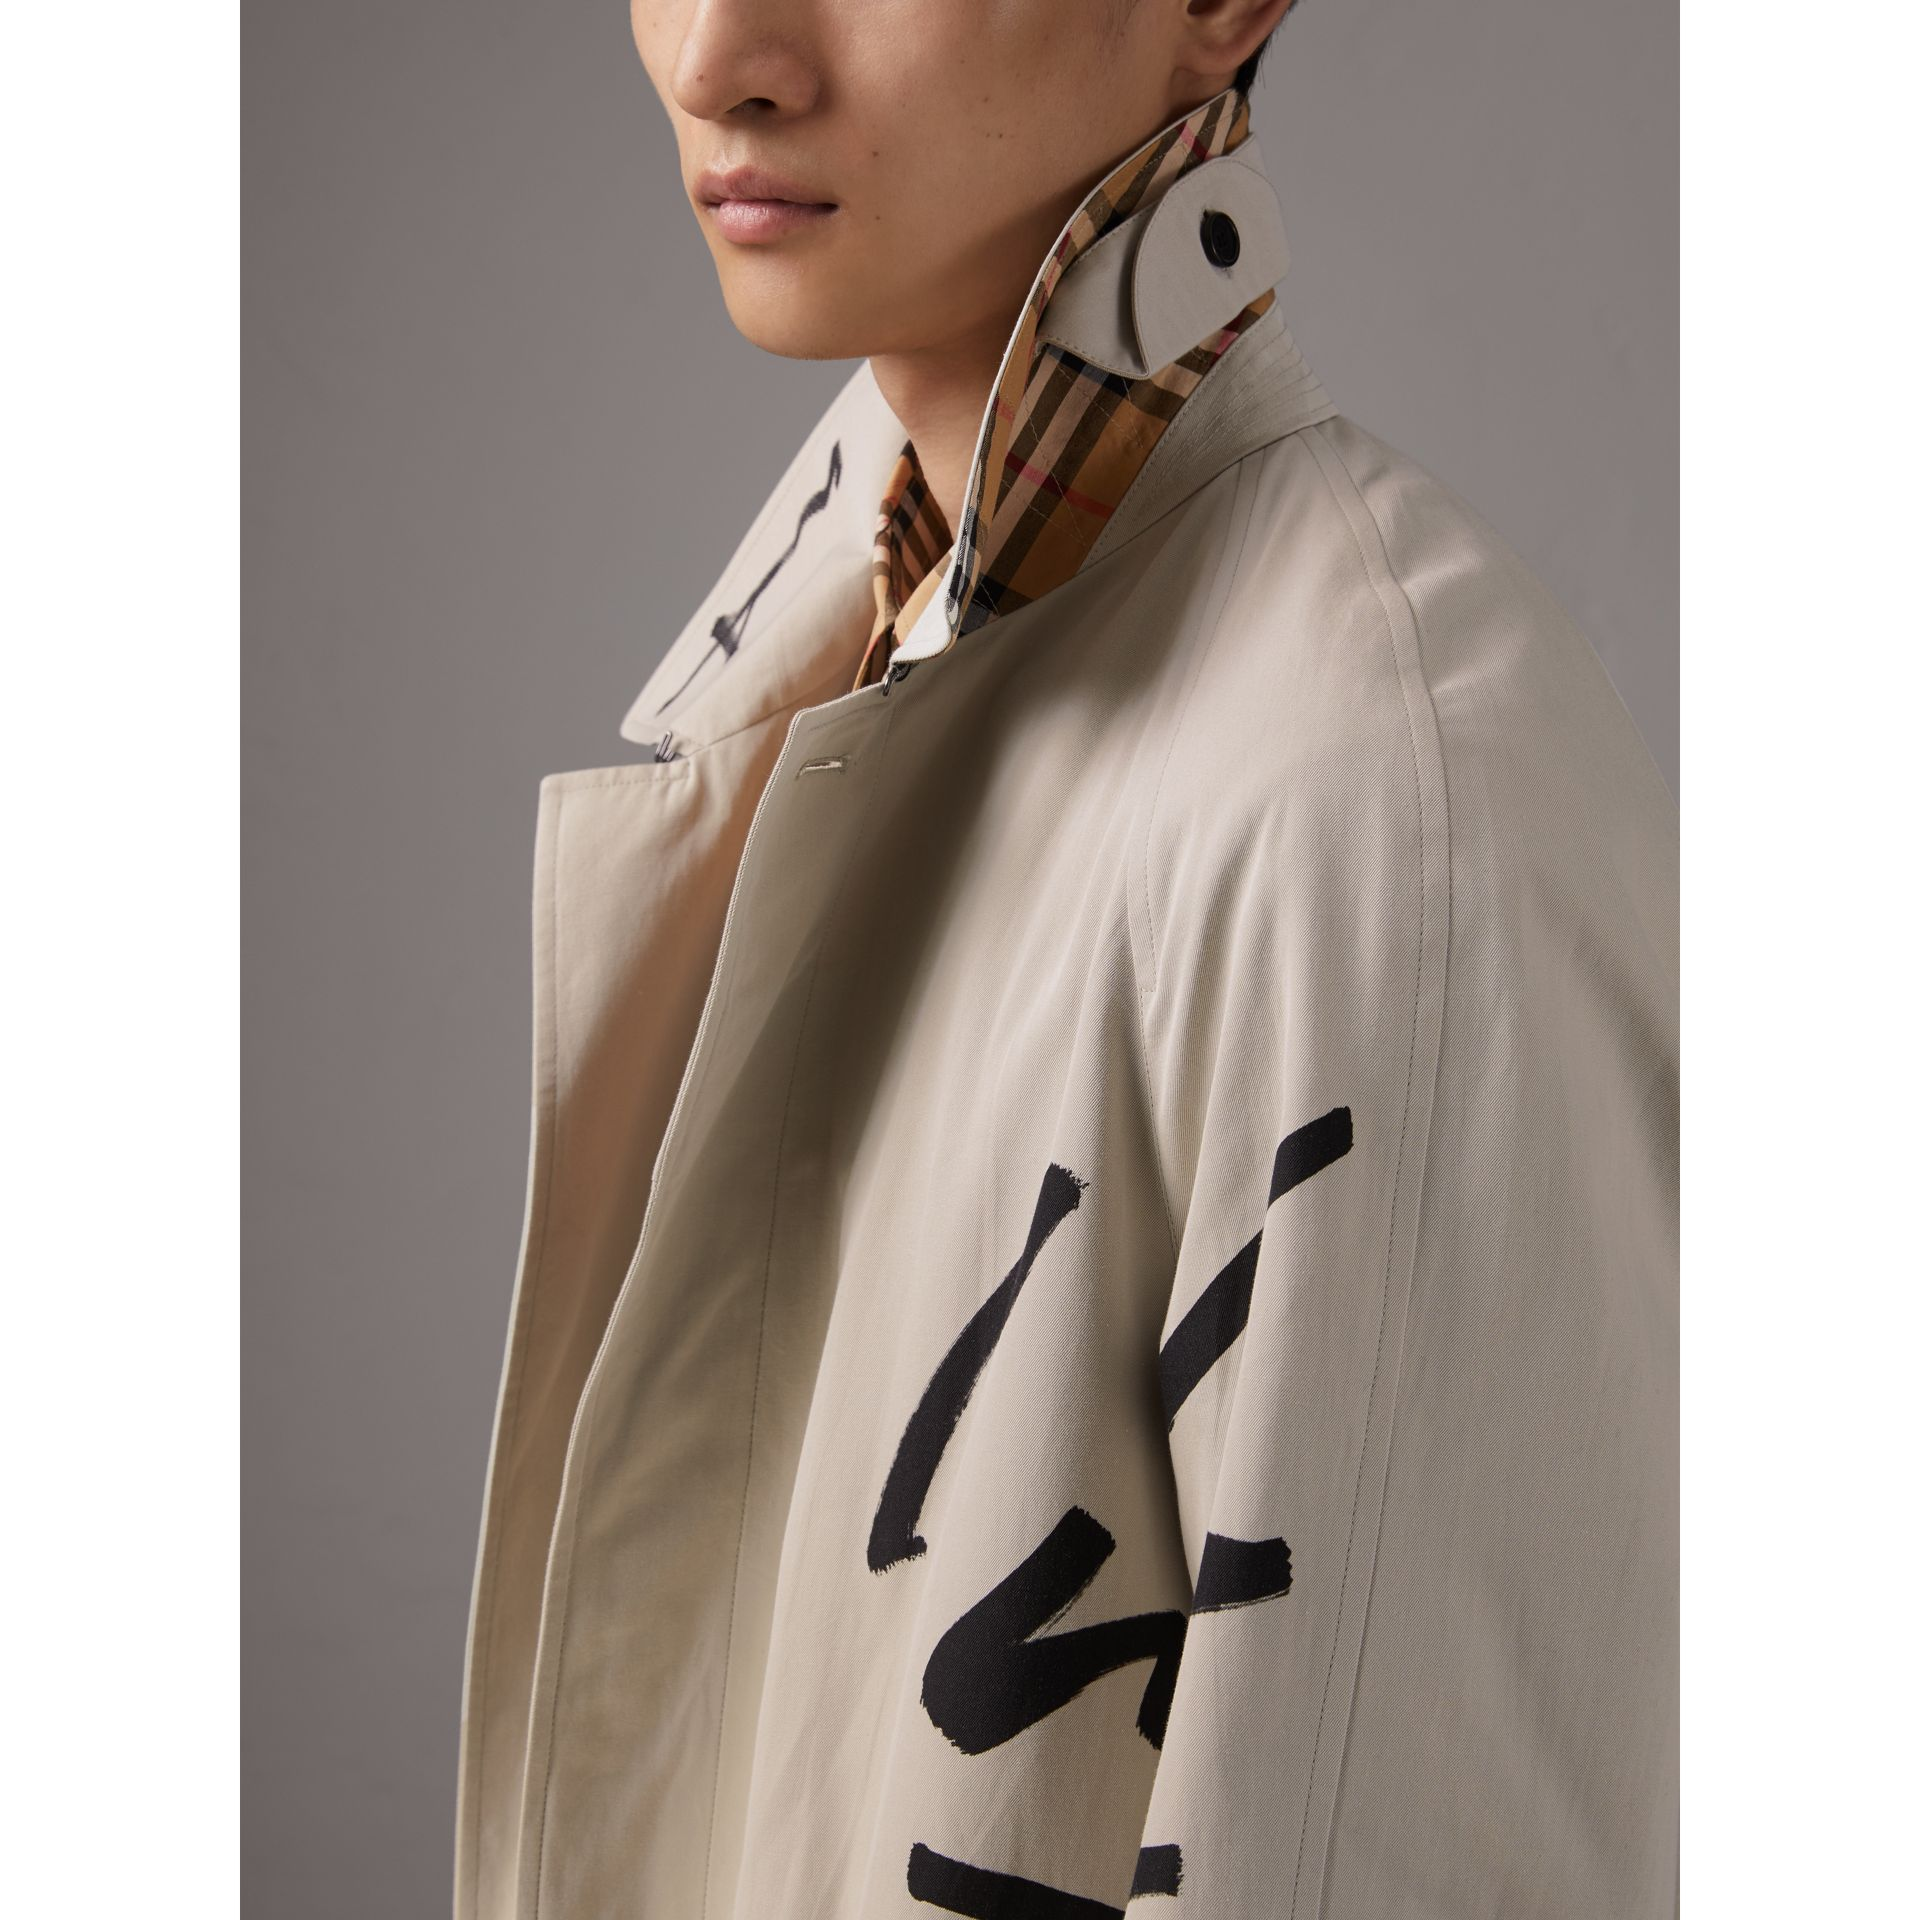 Burberry x Kris Wu Gabardine Car Coat in Stone - Men | Burberry - gallery image 5